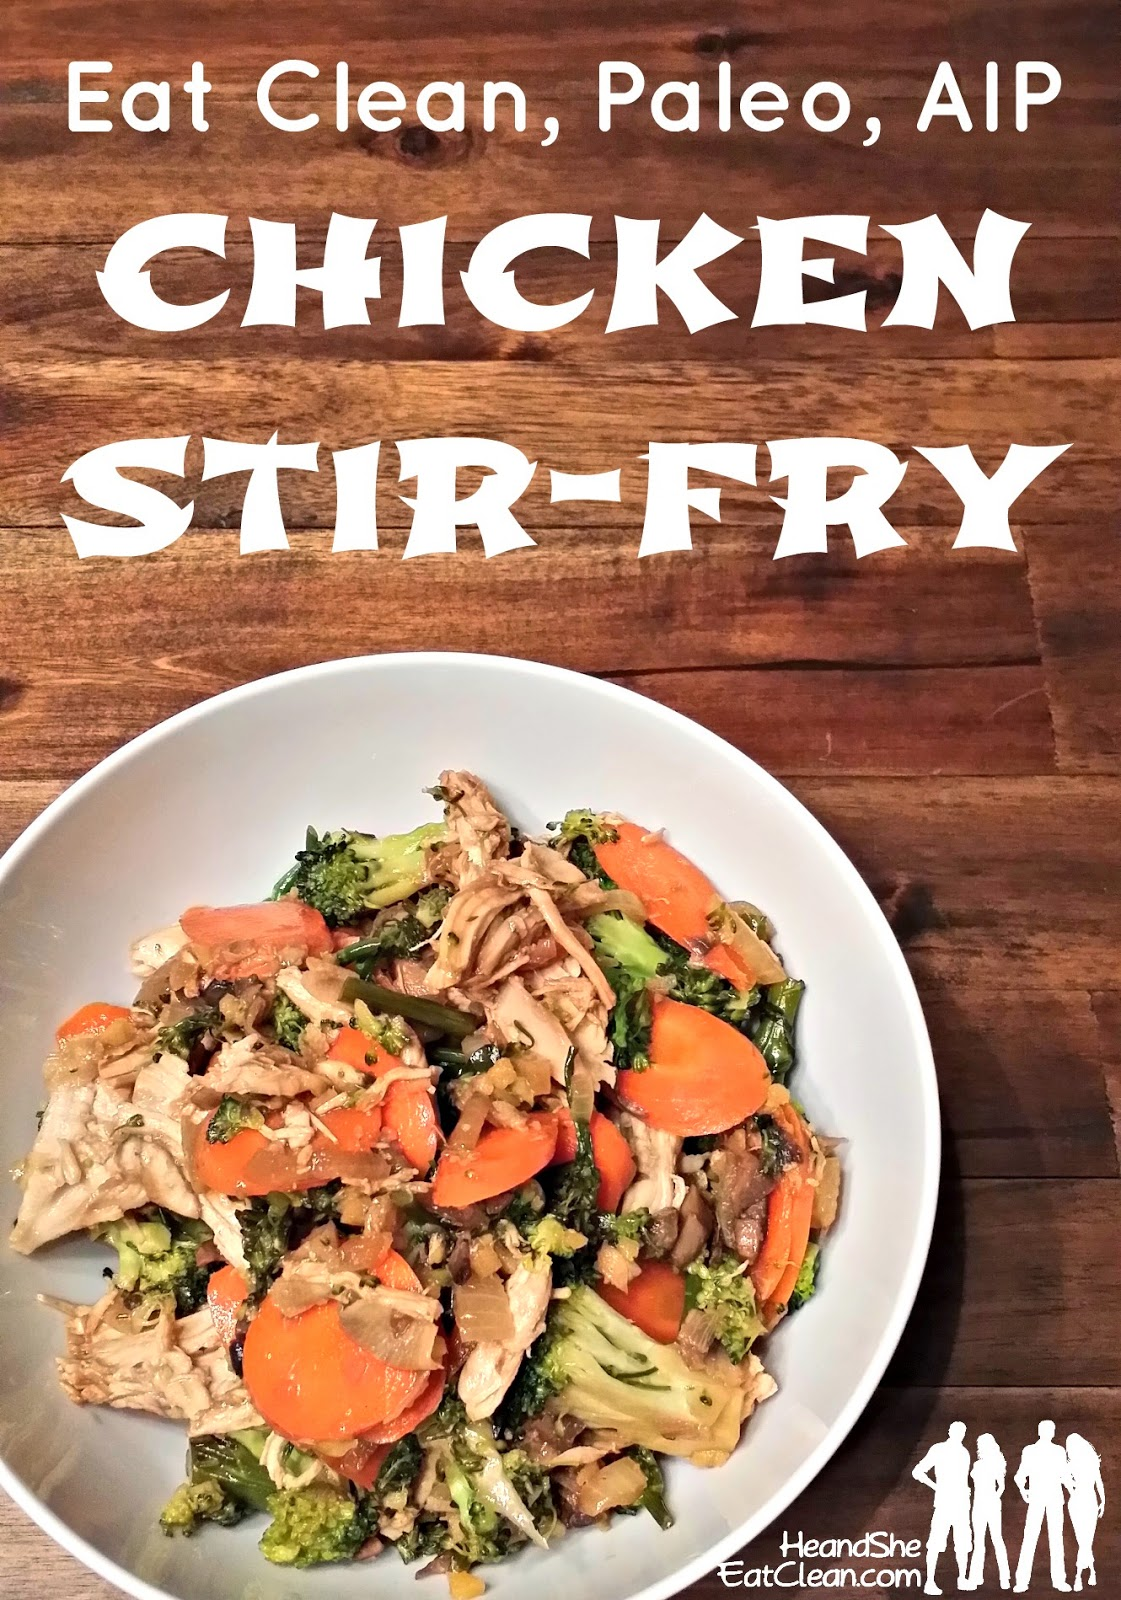 Chicken Stir Fry He And She Eat Clean